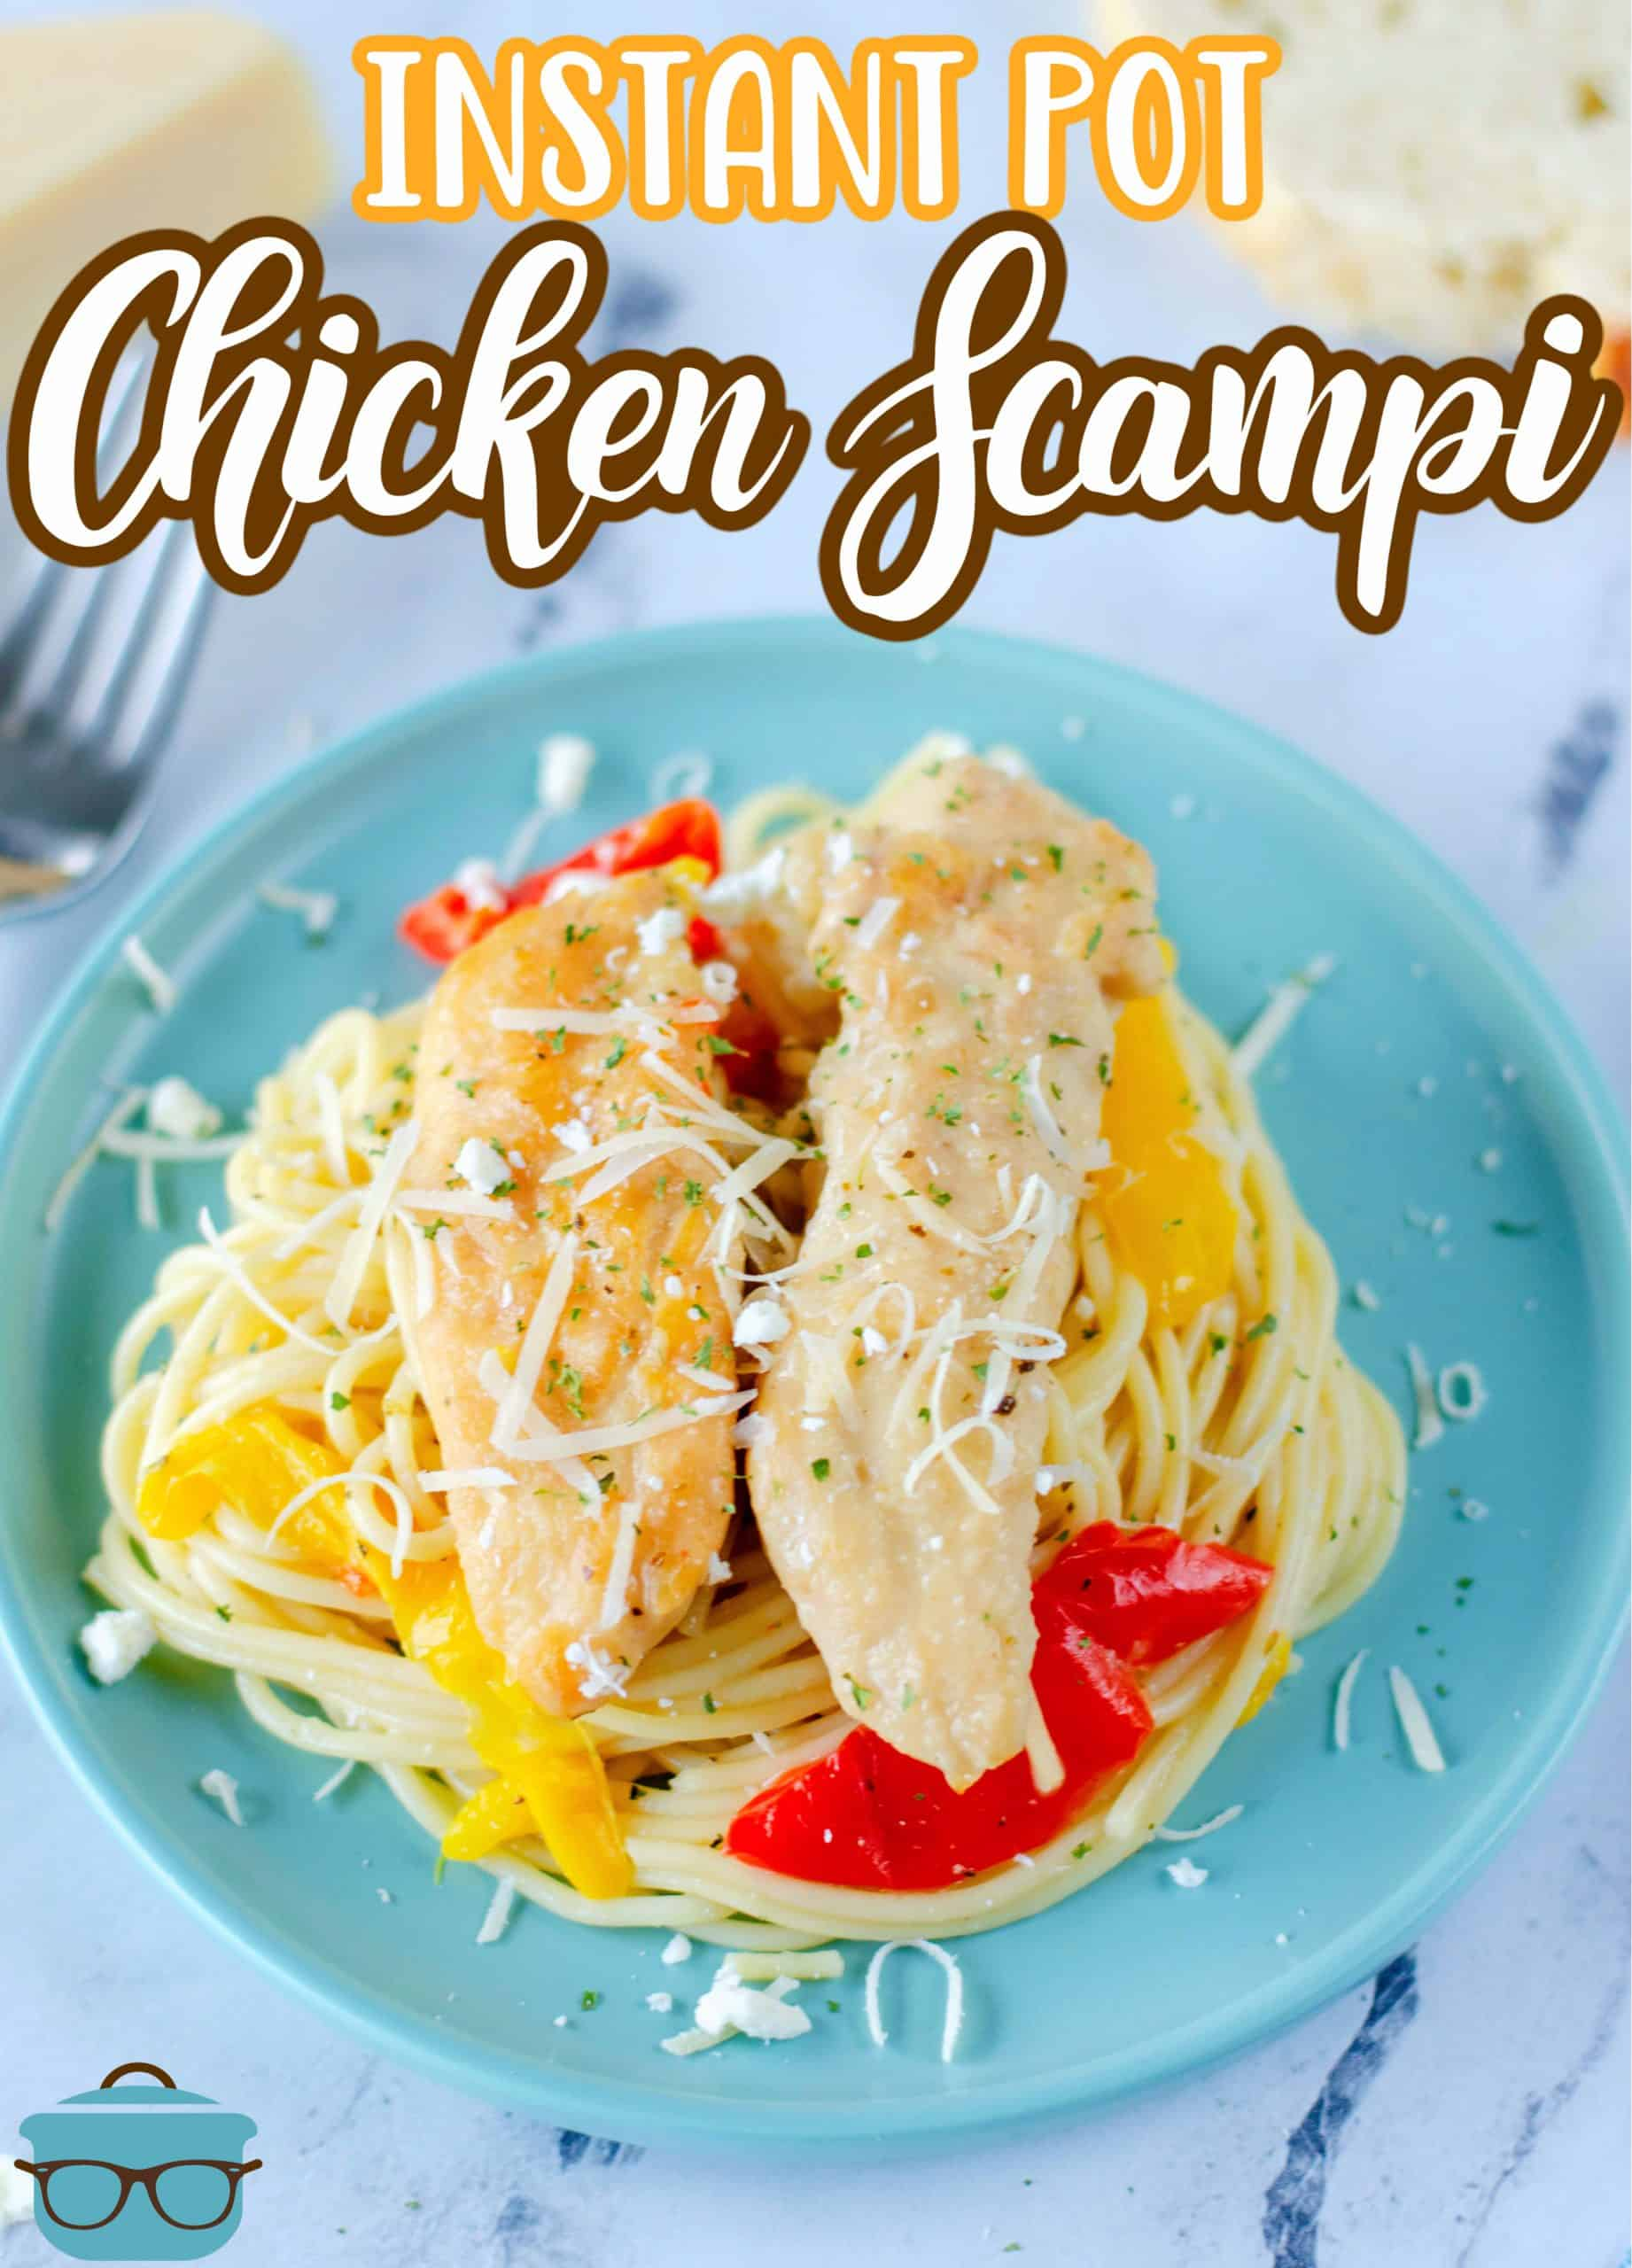 Want a a restaurant quality dish that you can make at home? This Instant Pot Chicken Scampi is easy, delicious, flavorful and perfect for the whole family.